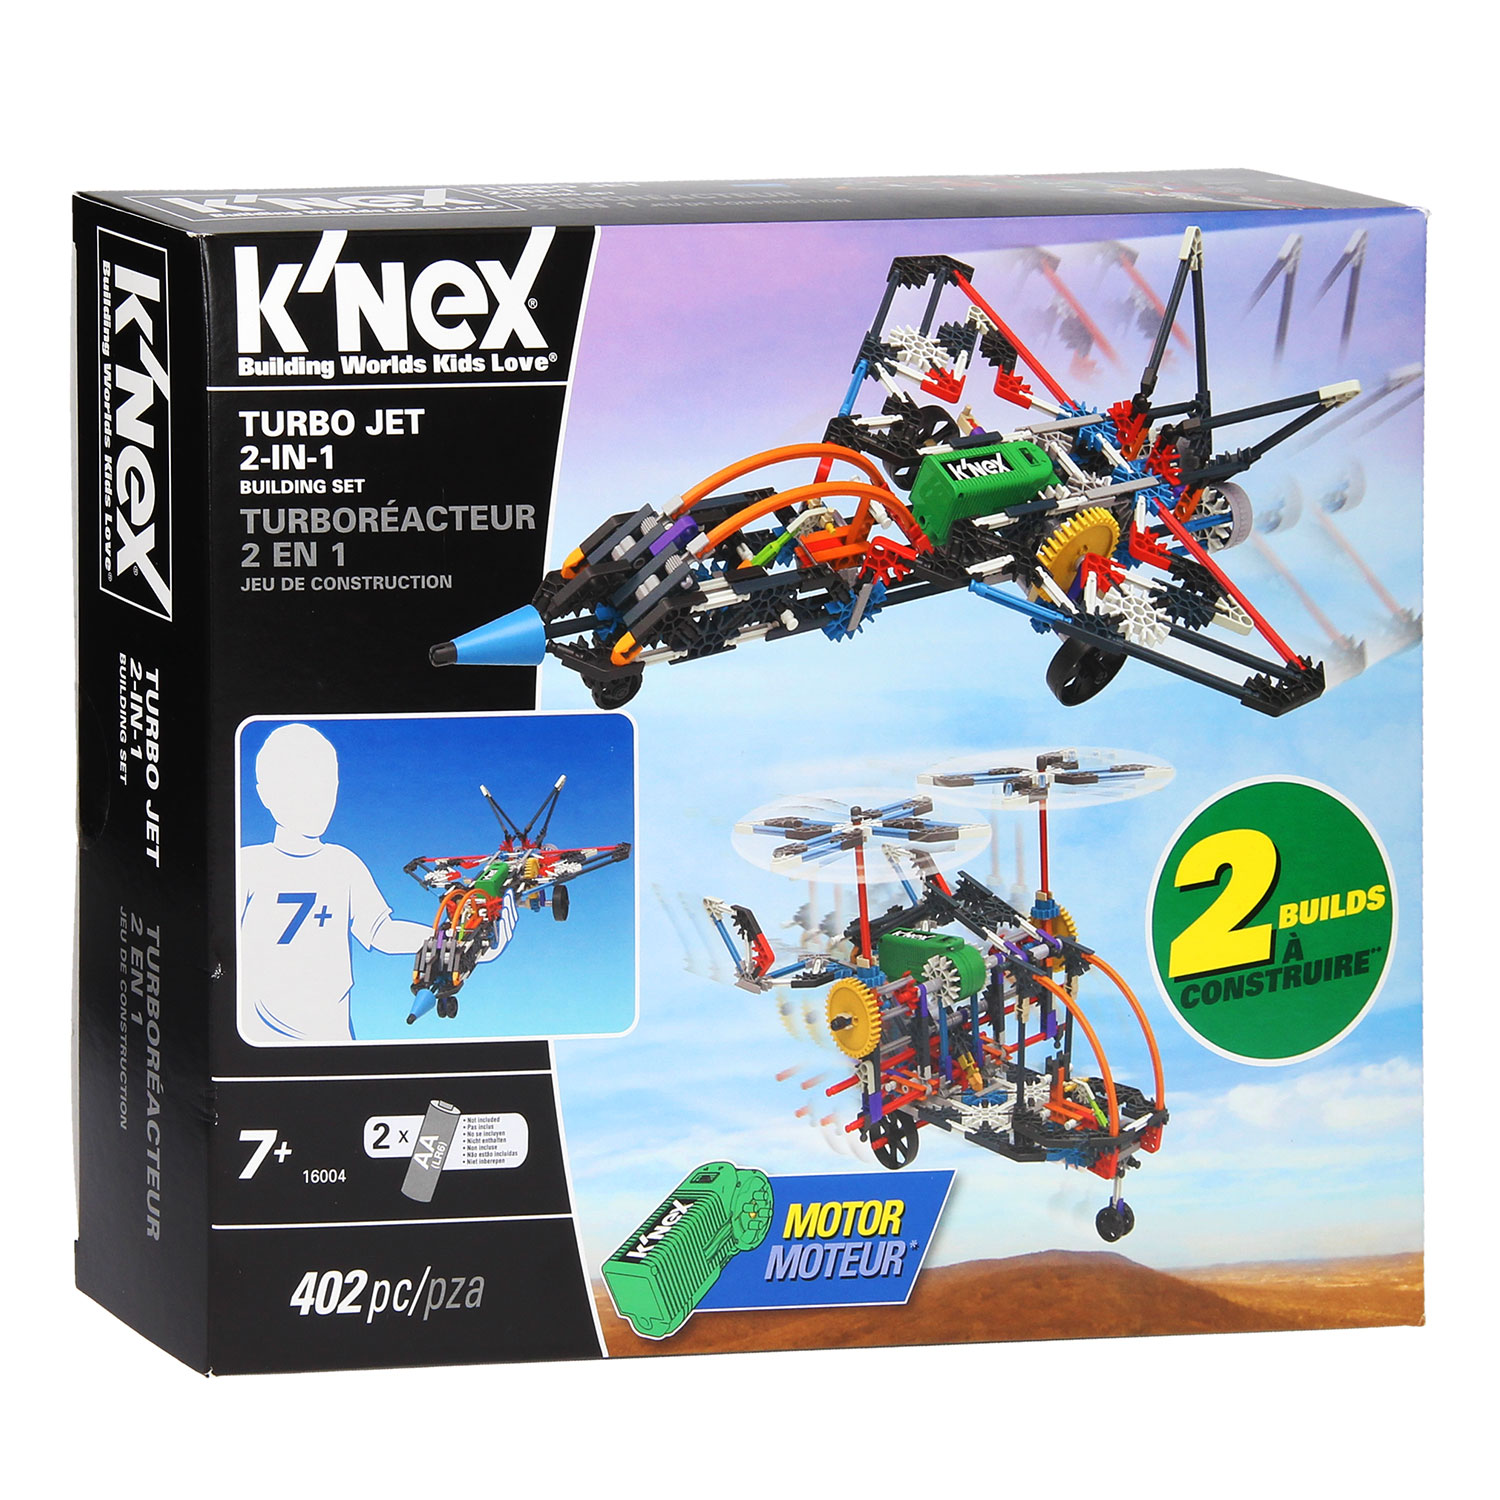 K'Nex Turbo Jet, 2in1